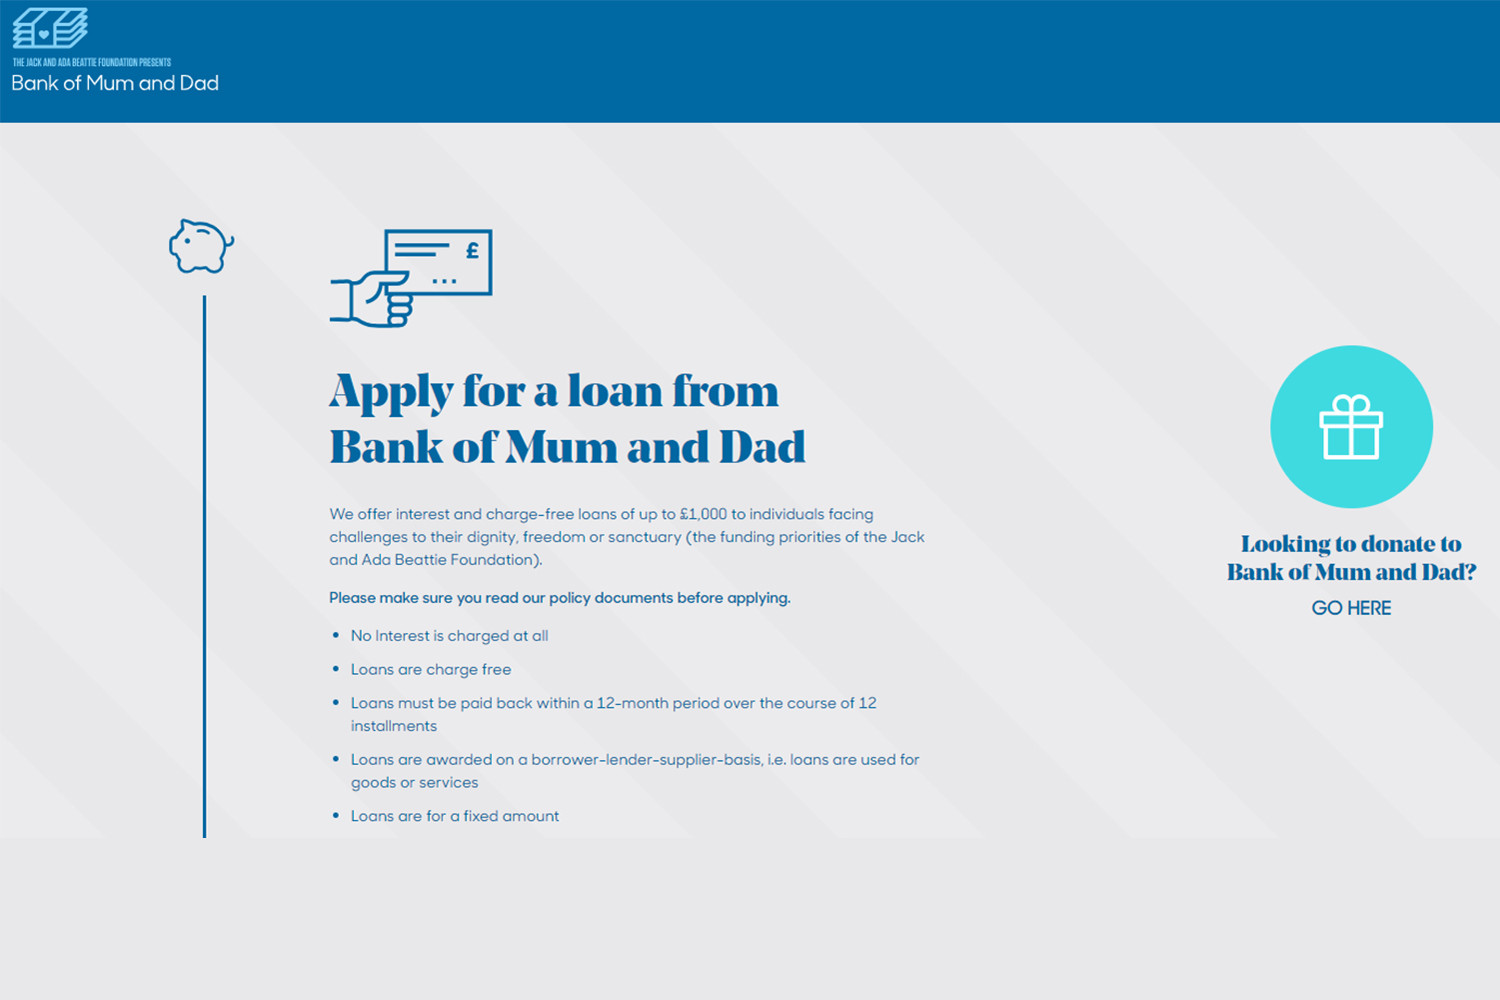 The Bank of Mum and Dad is offering zero per cent interest loans to those in need